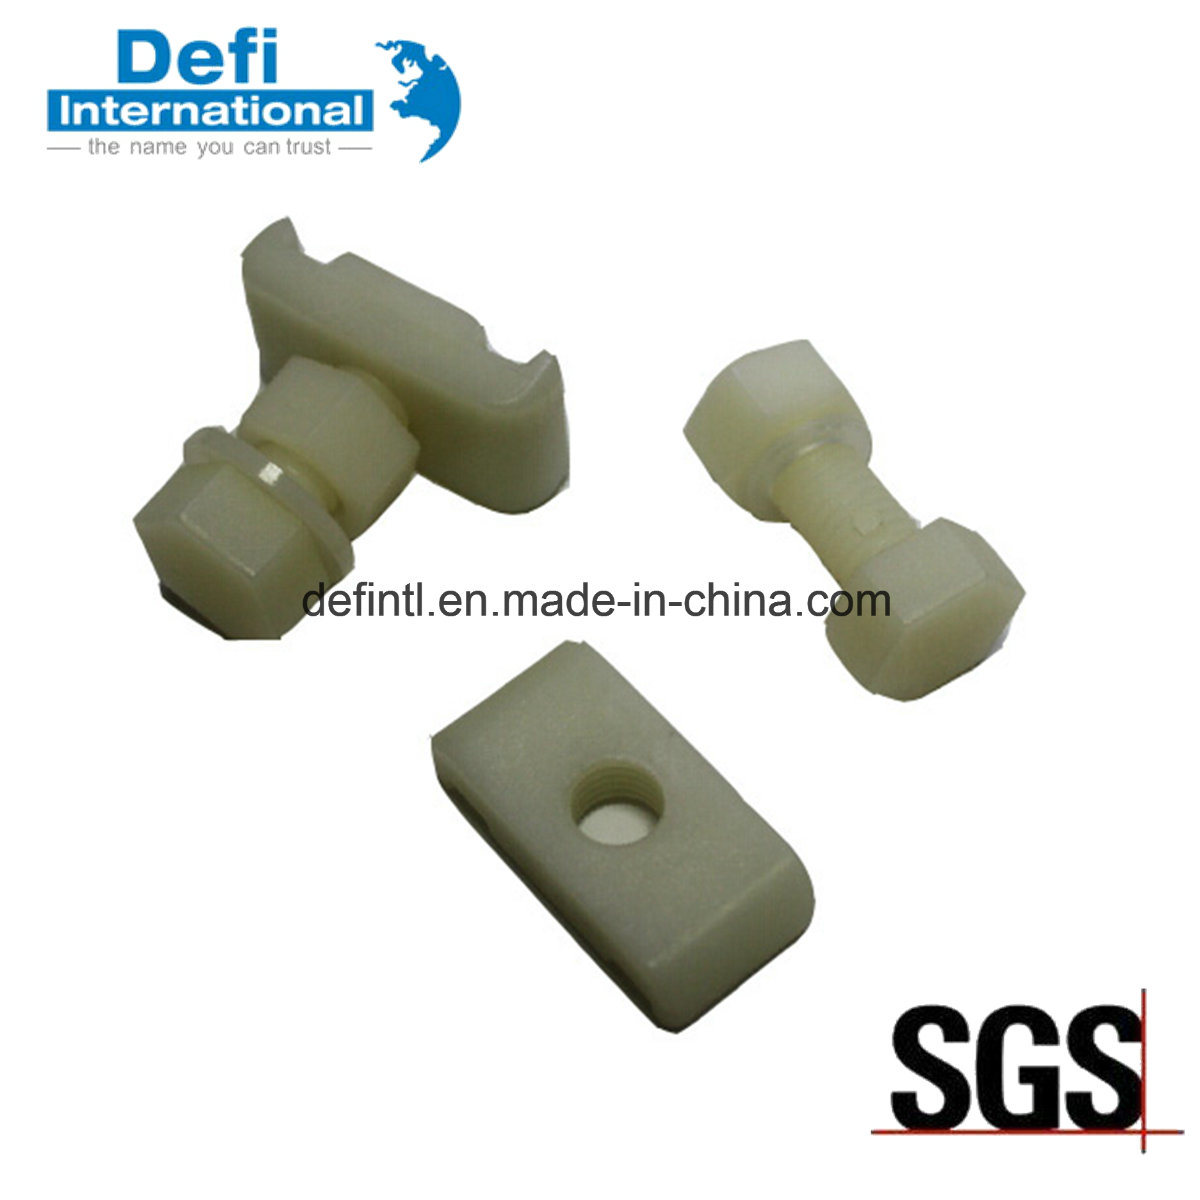 PP Plastic Parts for Electronic Machines